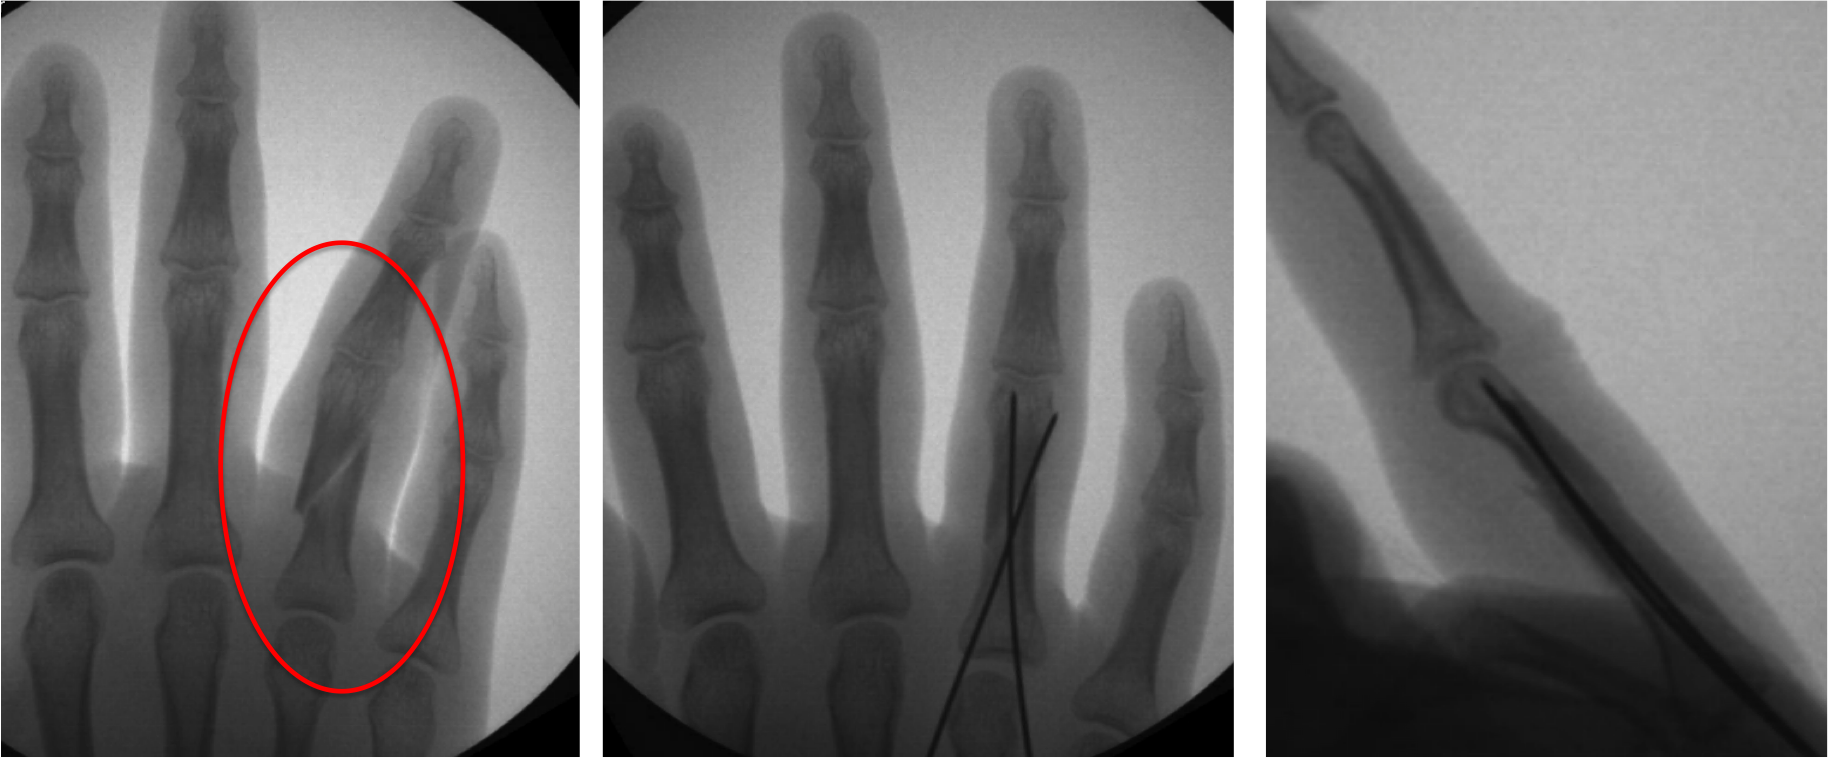 Fracture of the proximal phalanx bone of the ring finger. Spiral, oblique fractures such as this one tend to cause rotational deformities of the finger. In the x-ray on the left, the ring finger can be seen overlapping the pinkie finger. The abnormal positioning will adversely affect function of the finger if it is left to heal in this bent and rotated position. An outpatient procedure can improve the alignment and allow the bone to heal in a normal position. As shown above, the fracture is aligned, and temporary pins are placed through the skin (no incision) to hold the two fractured pieces together. The pins are removed 2-3 weeks later in the office, and motion is started. Strengthening and more vigorous activities are resumed once the fracture has healed (~6 weeks).